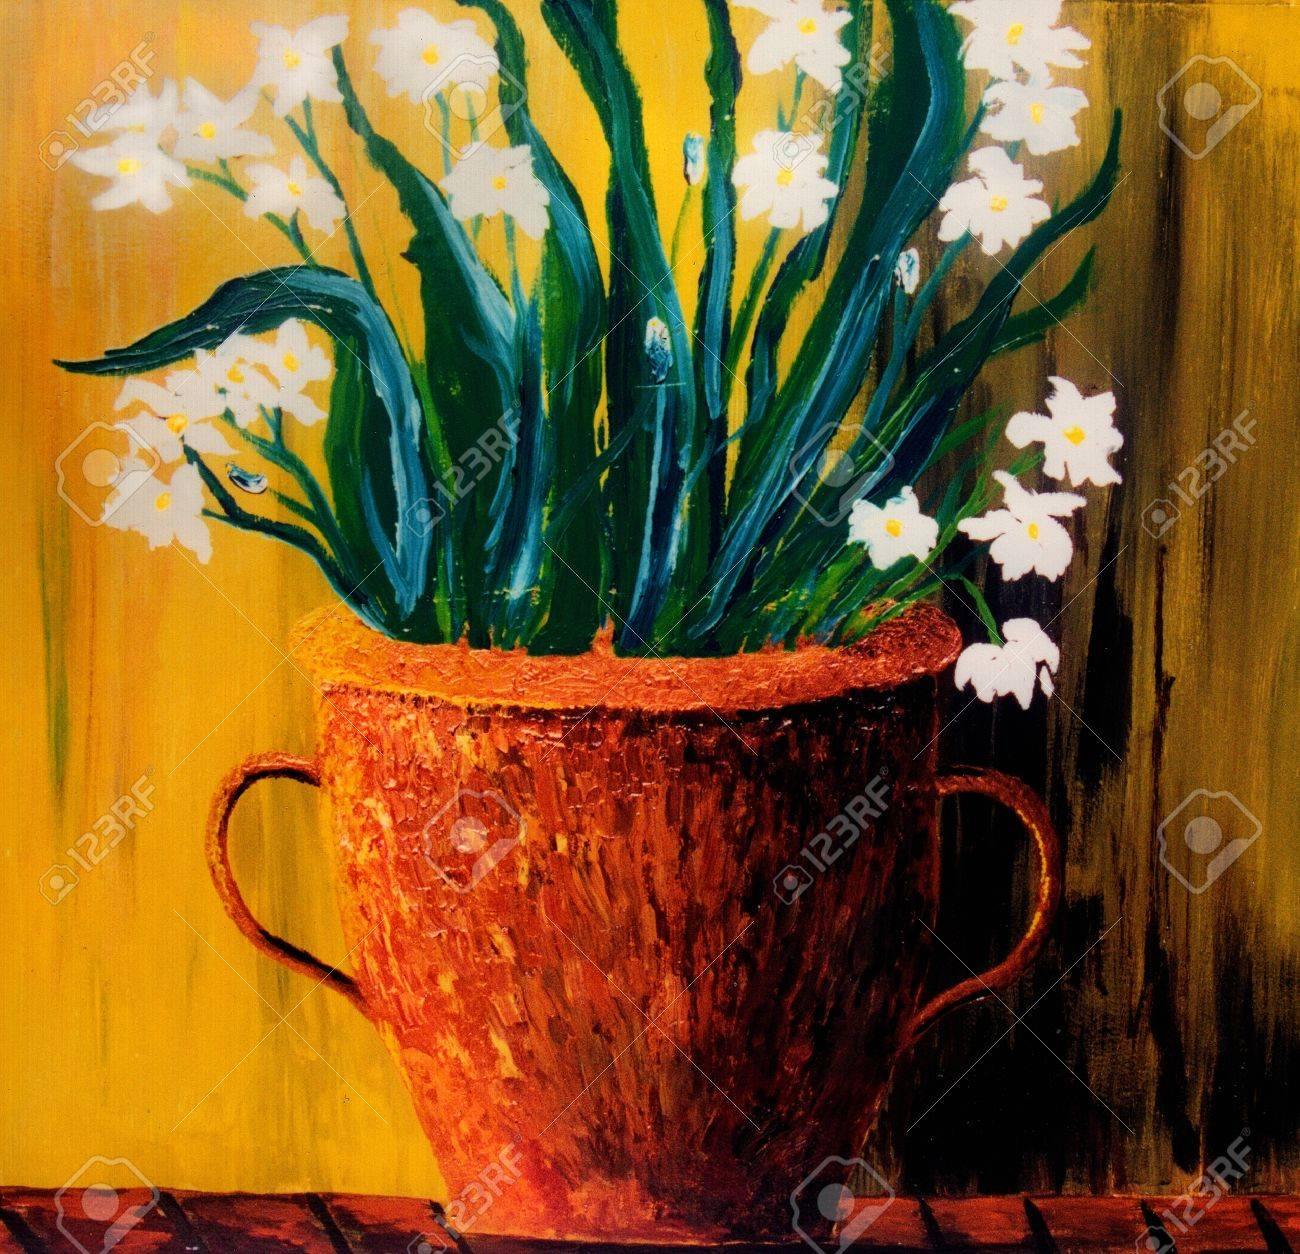 Beautiful Original Painting Of White Flowers In A Copper Vase Stock